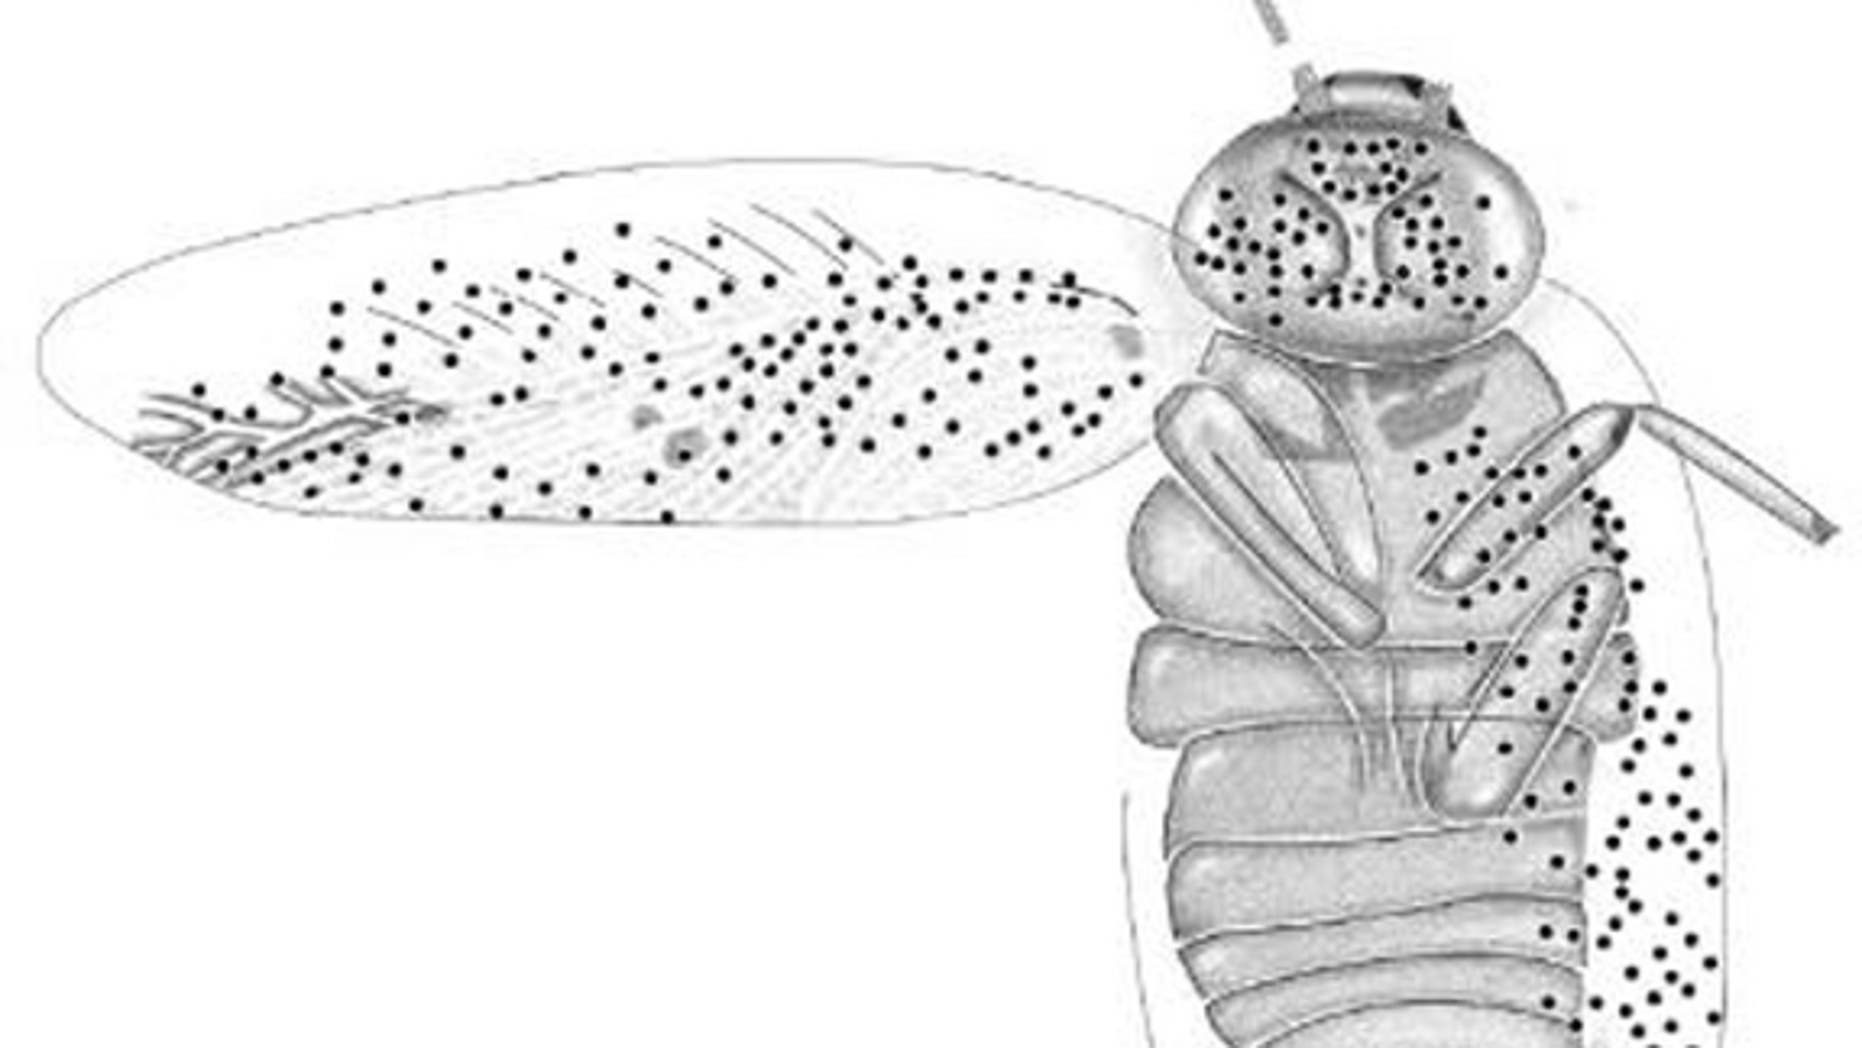 A drawing based on a recently-described fossil of a female <em> Ectobius kohlsi. </em> The dots represent sensory organs known as sensilla.